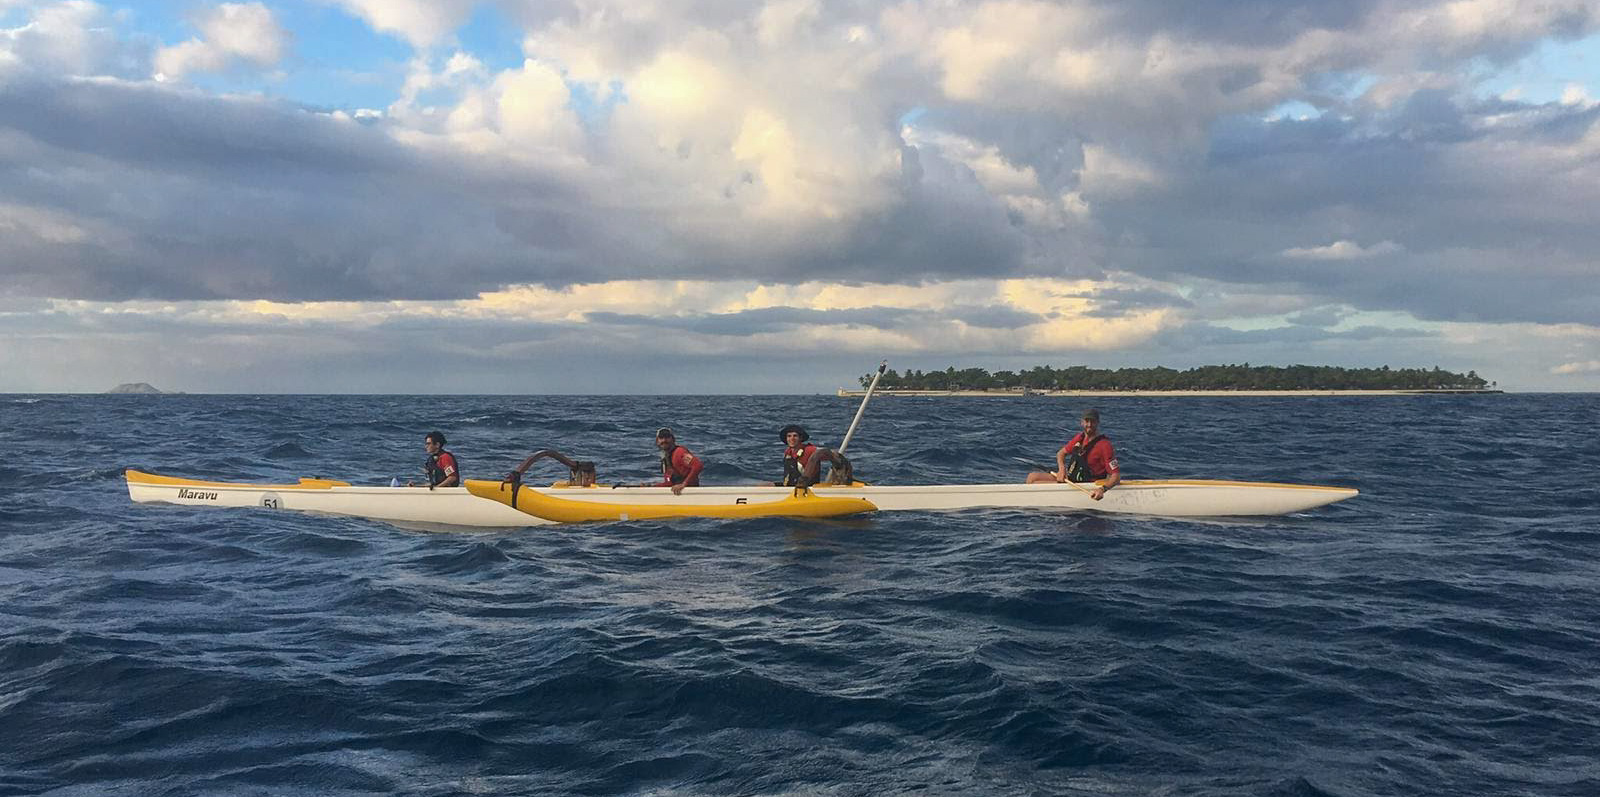 Team Eagle Scouts paddles an outrigger canoe.